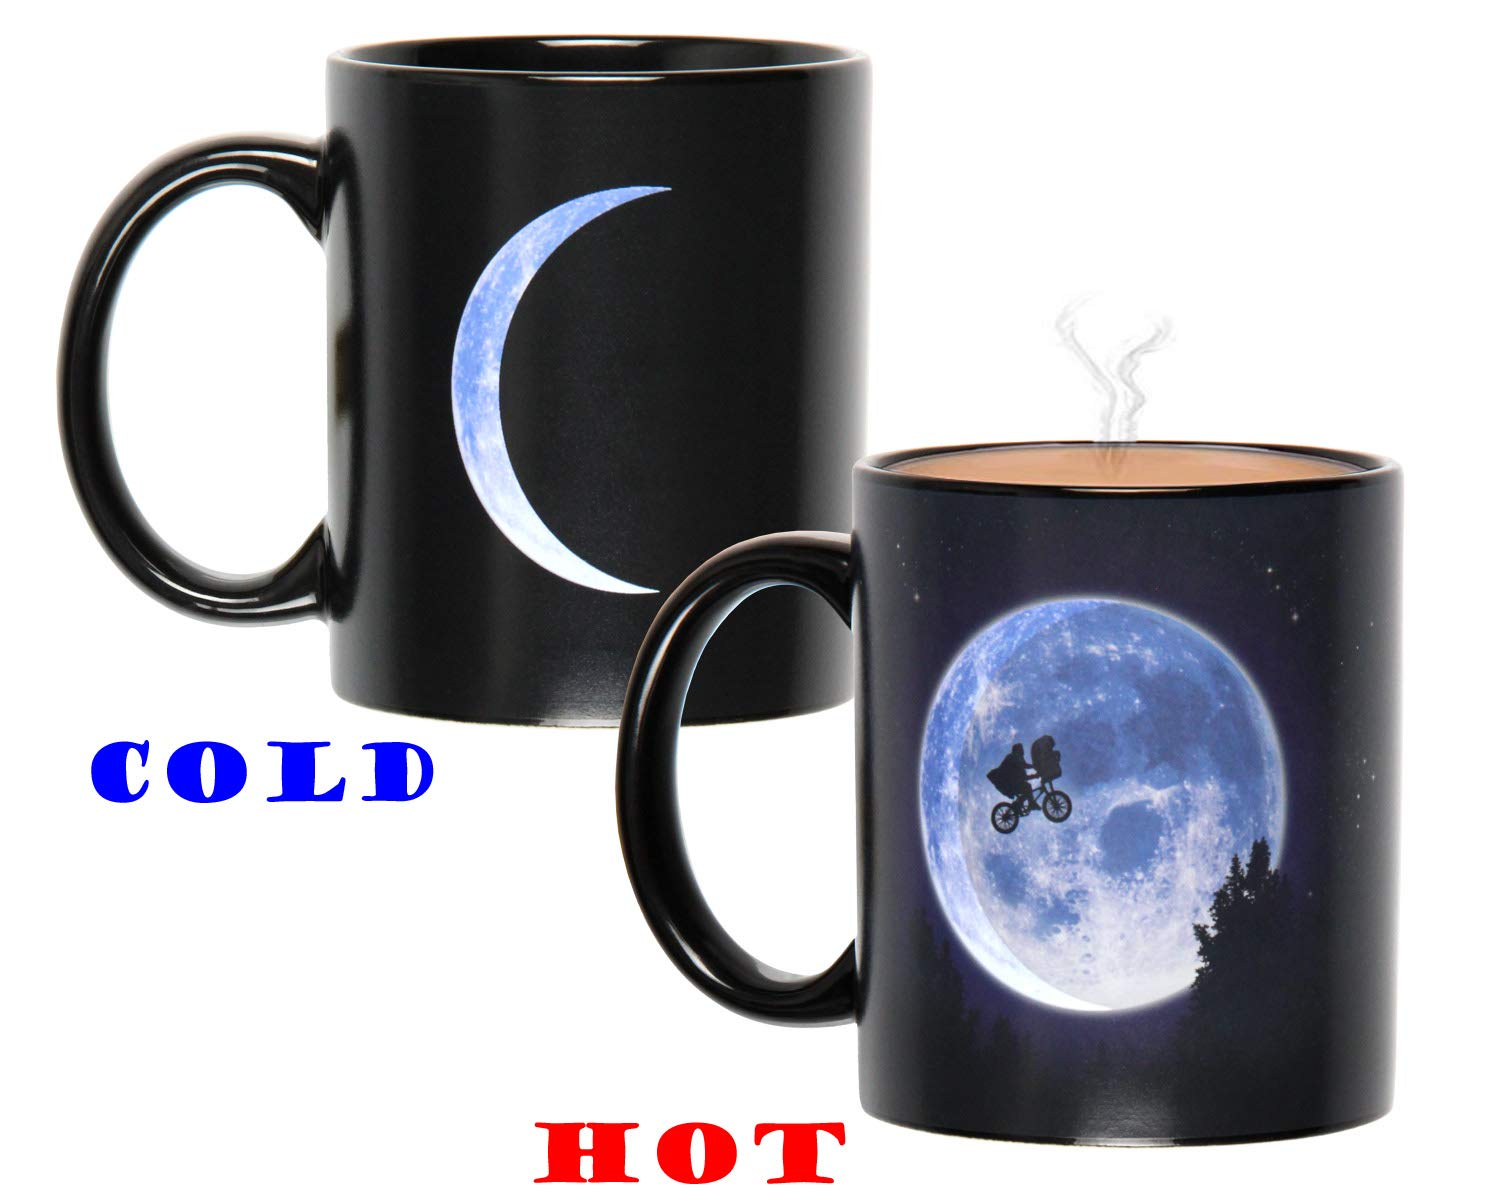 E.T The Extra-Terrestrial Moon Scene Heat Color Change Reactive Ceramic Coffee Mug